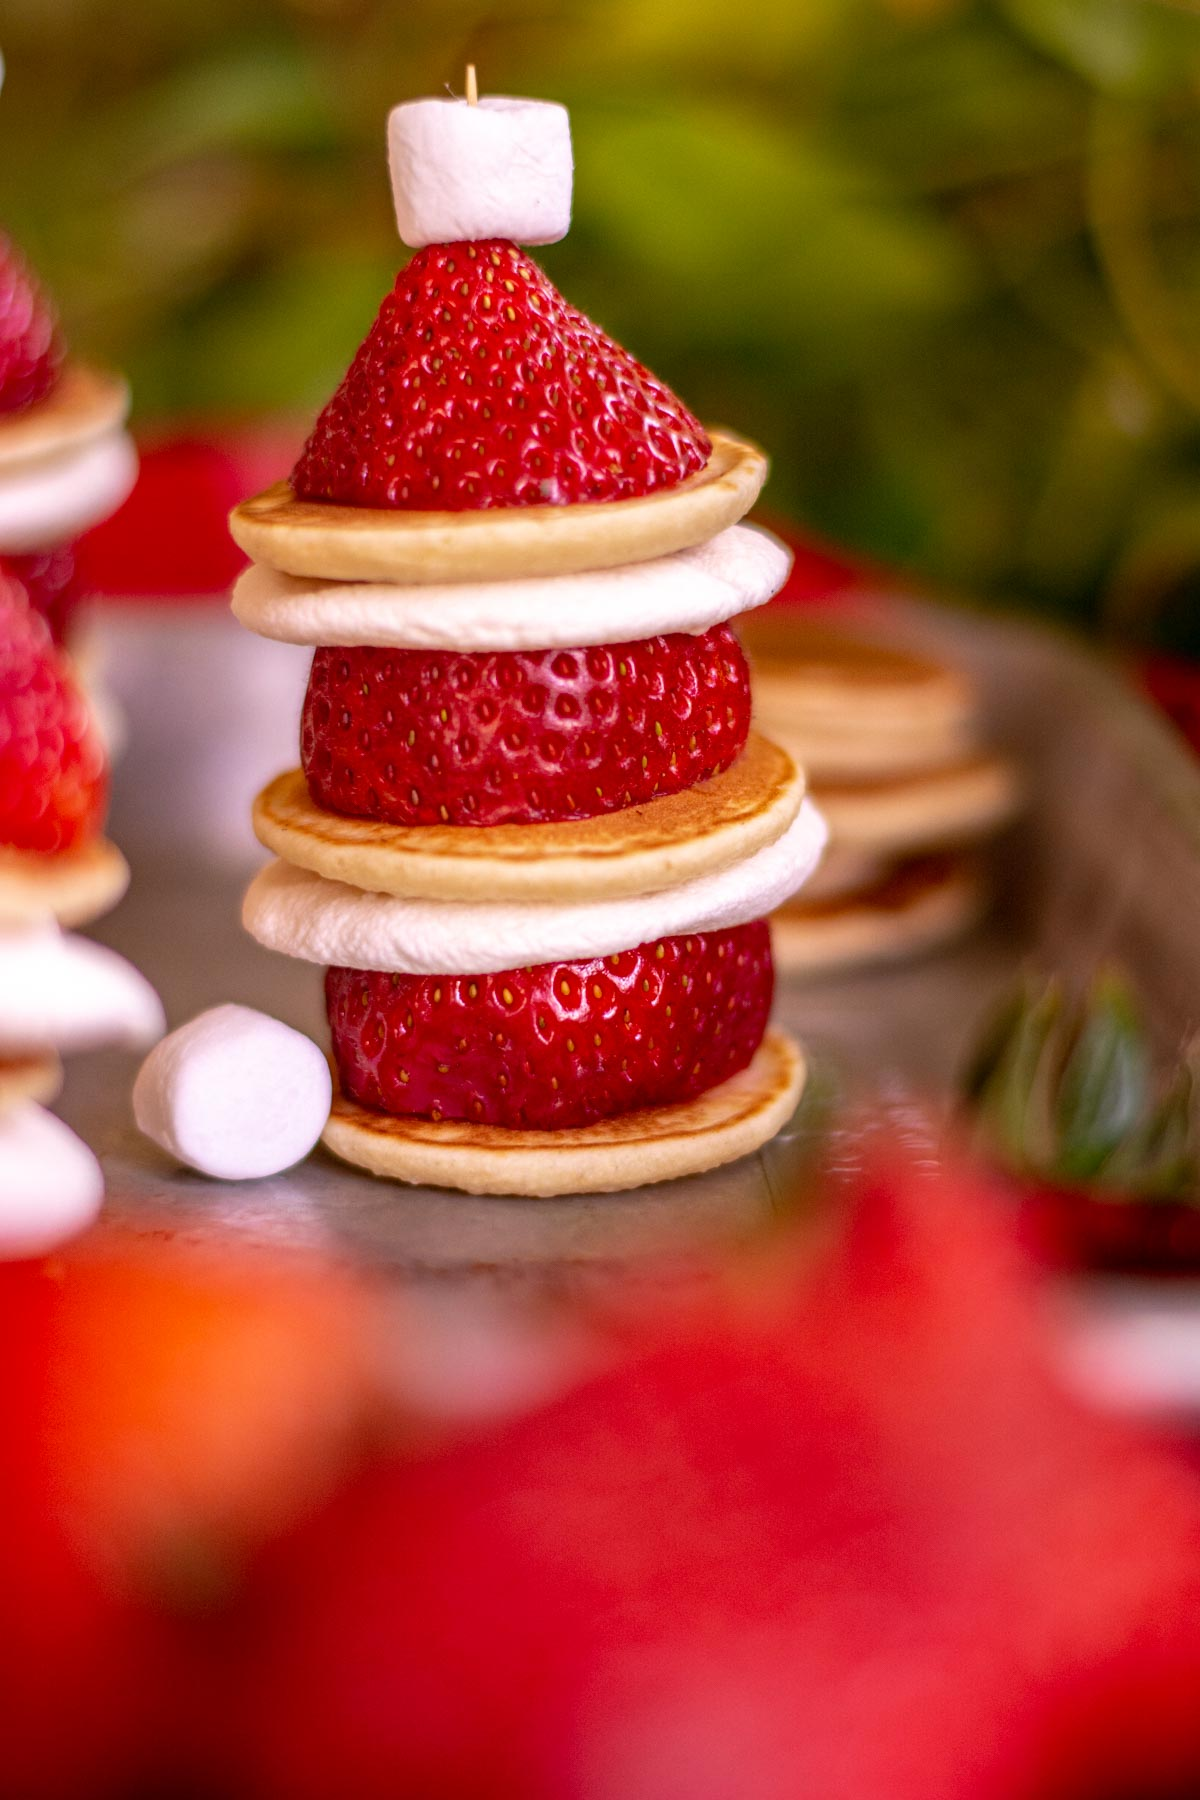 pancake, marshmallows and strawberries stacked to form a Santa's hat.